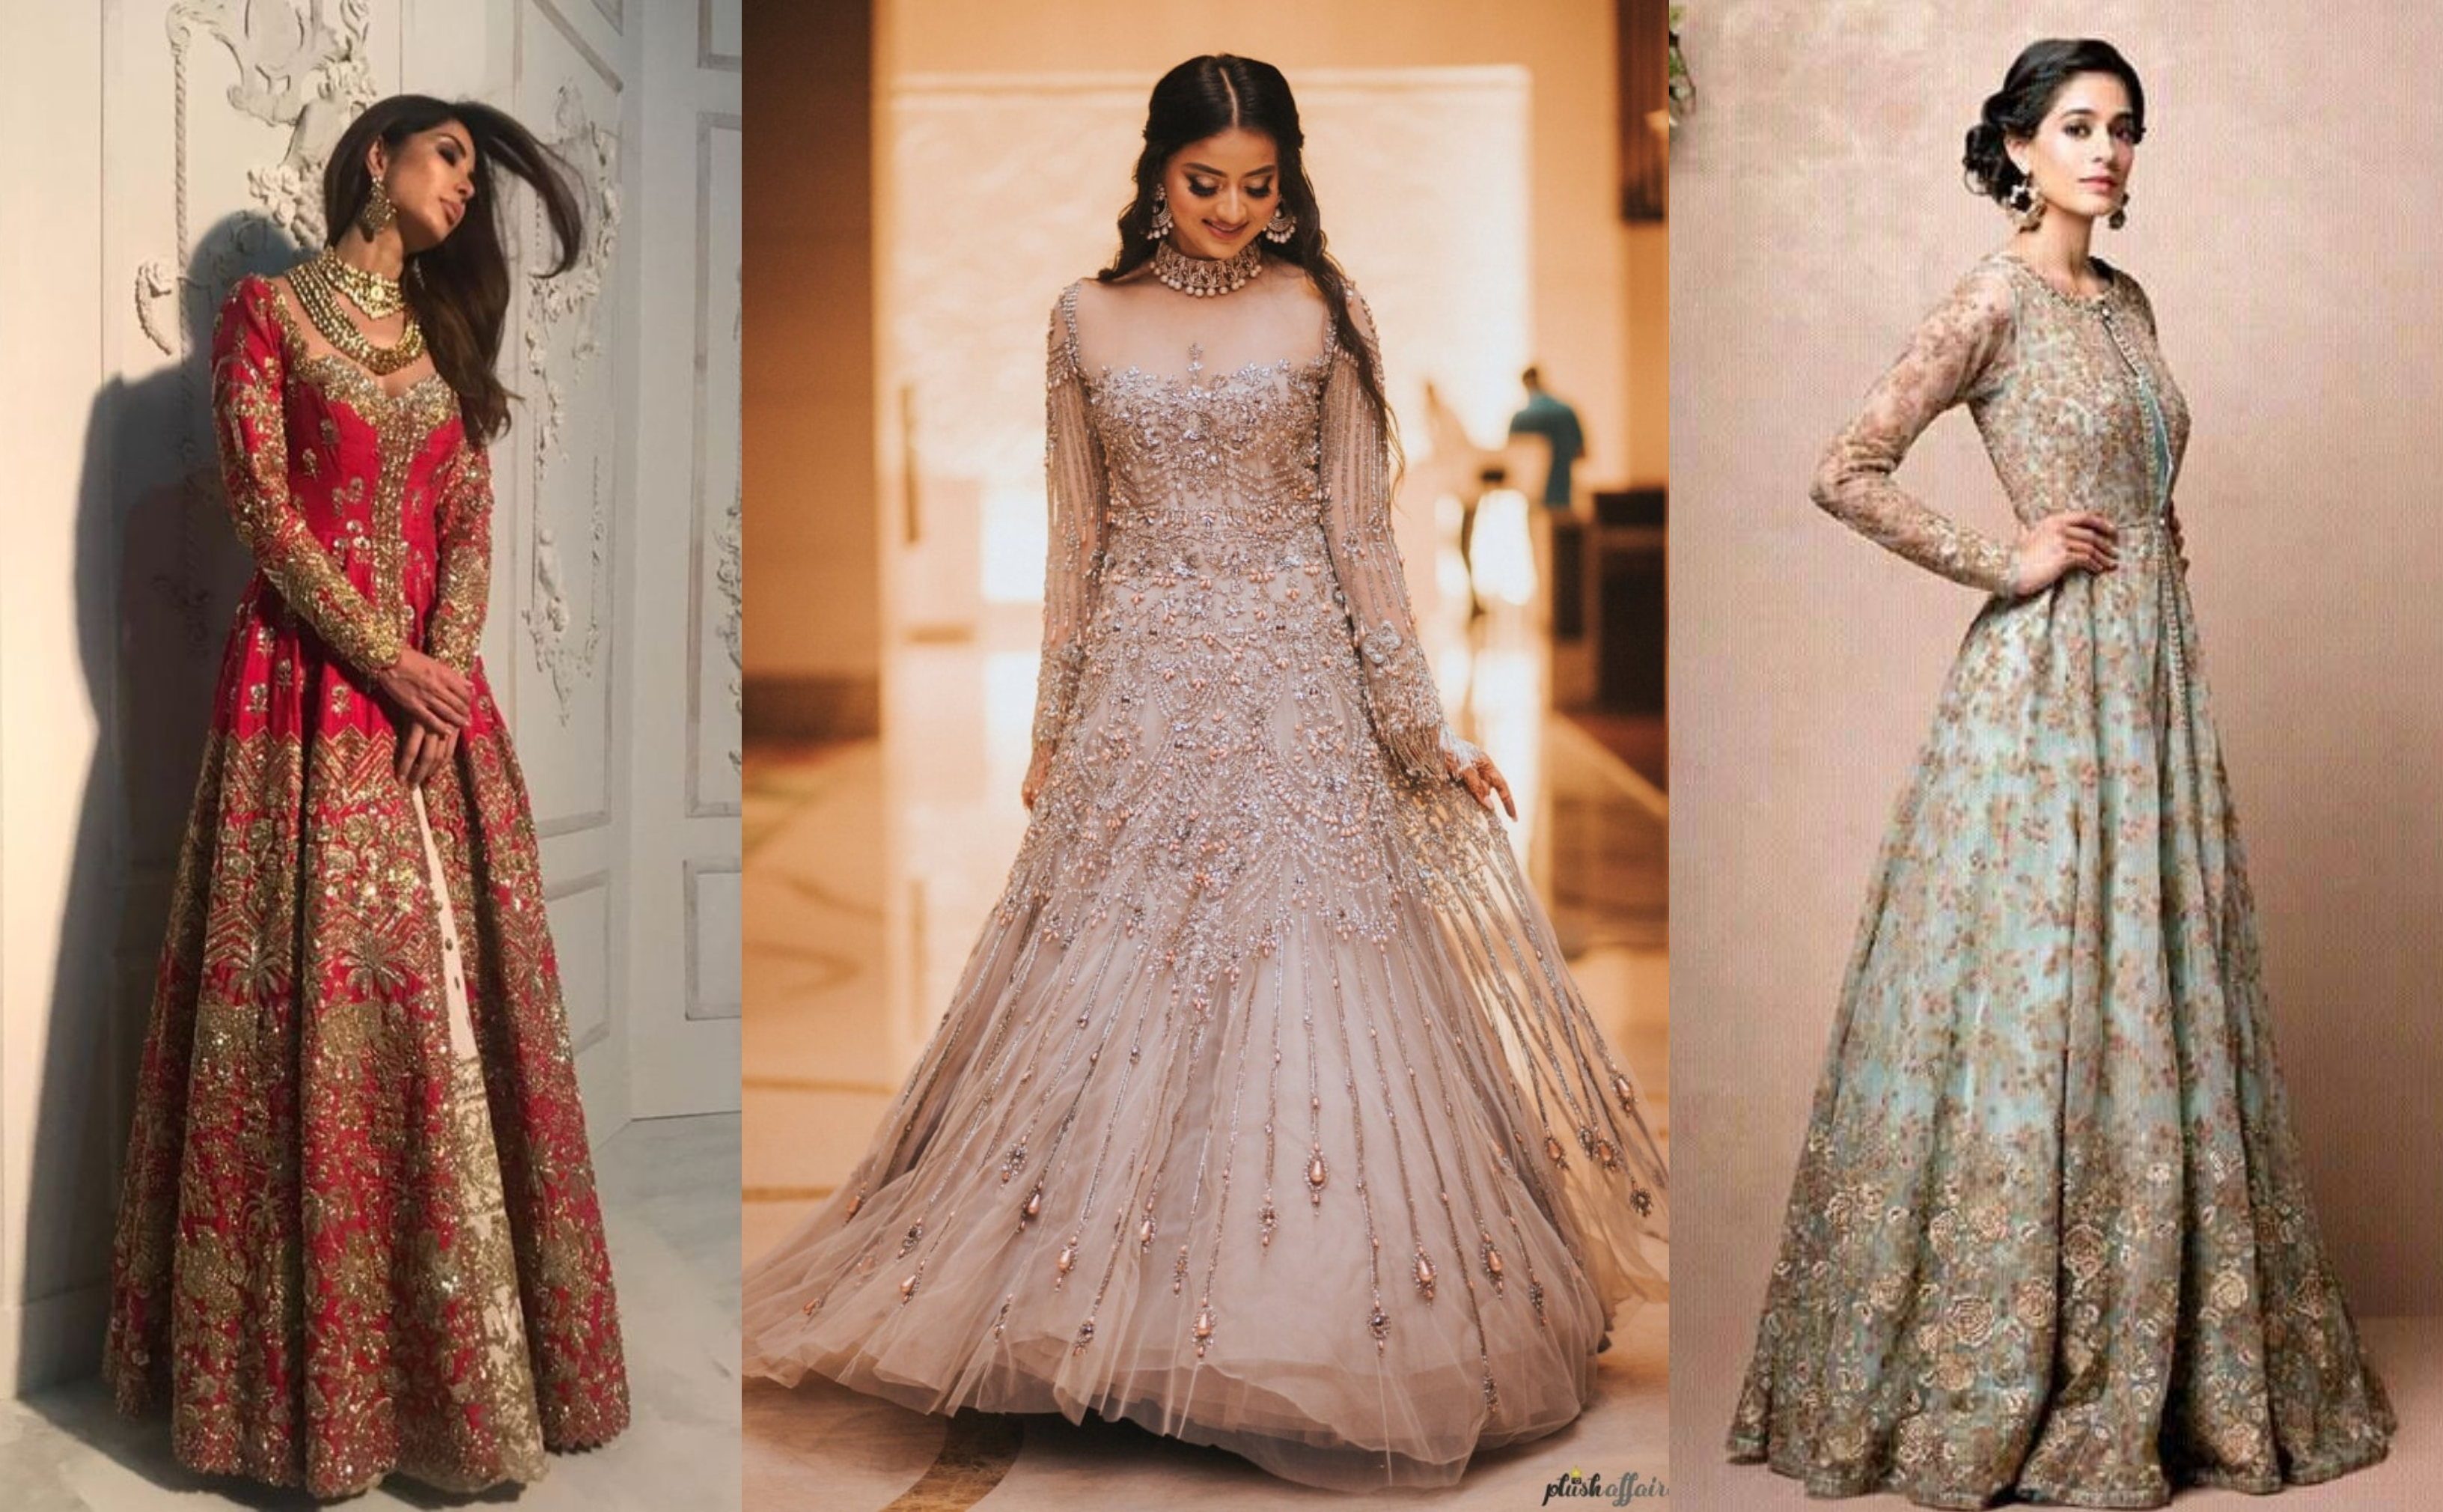 Top 7+ Wedding Gowns for Brides-To-Be That Are Worth Bookmarking